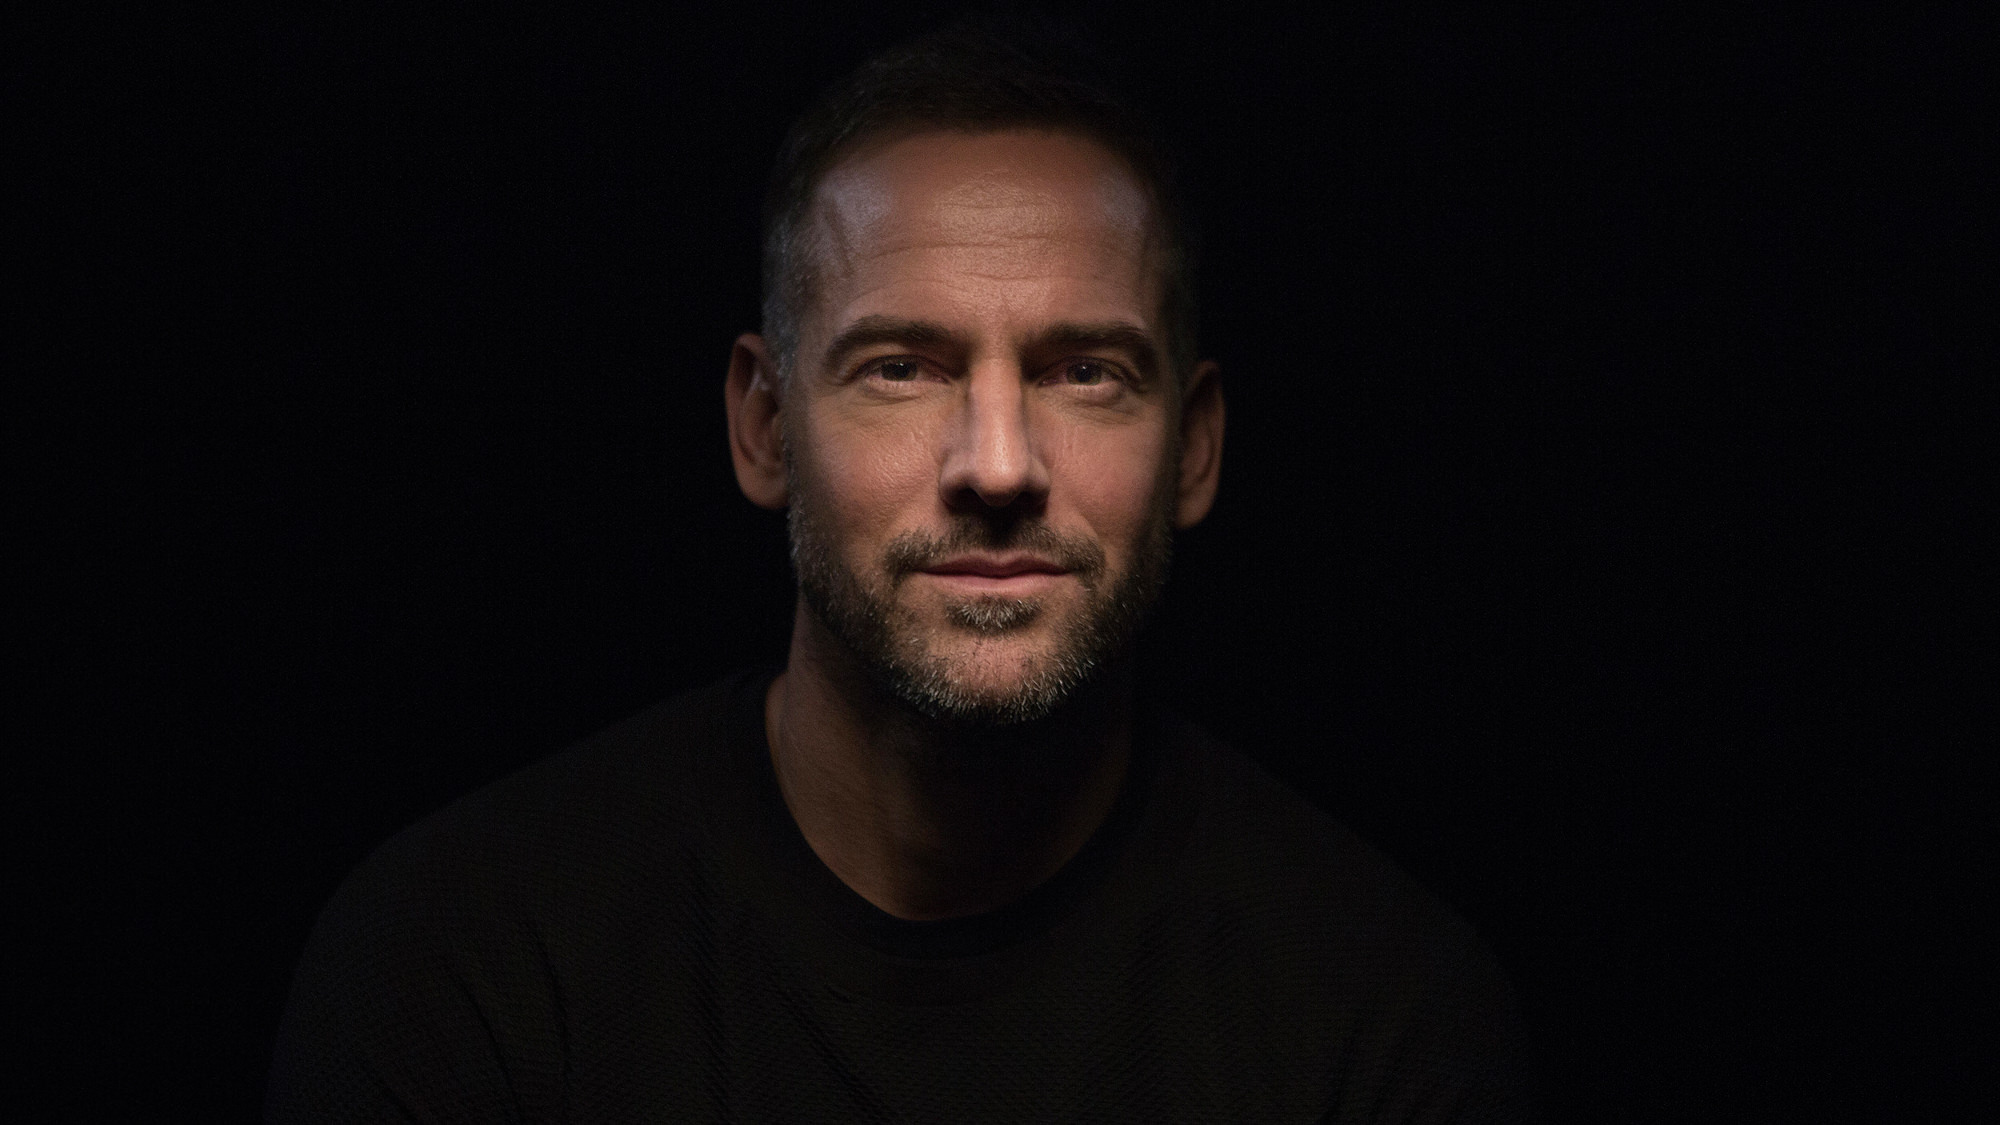 Janez Vermeiren from Save The Children Safe Spaces Campaign Image Library by Michelle Wastie Photography